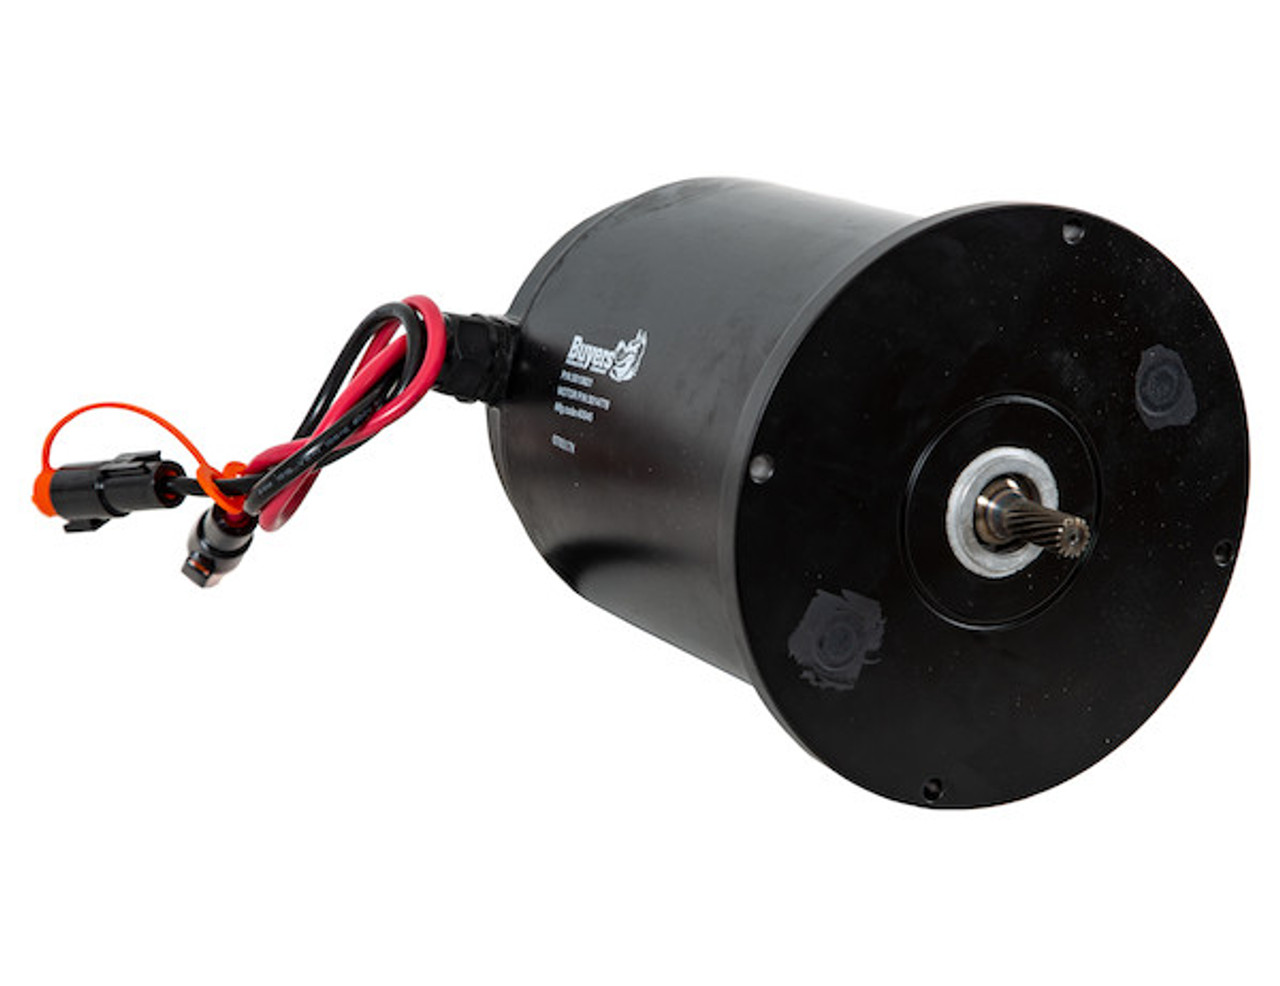 BUYERS 3014778 Replacement For Gearbox Motor 3013821 1